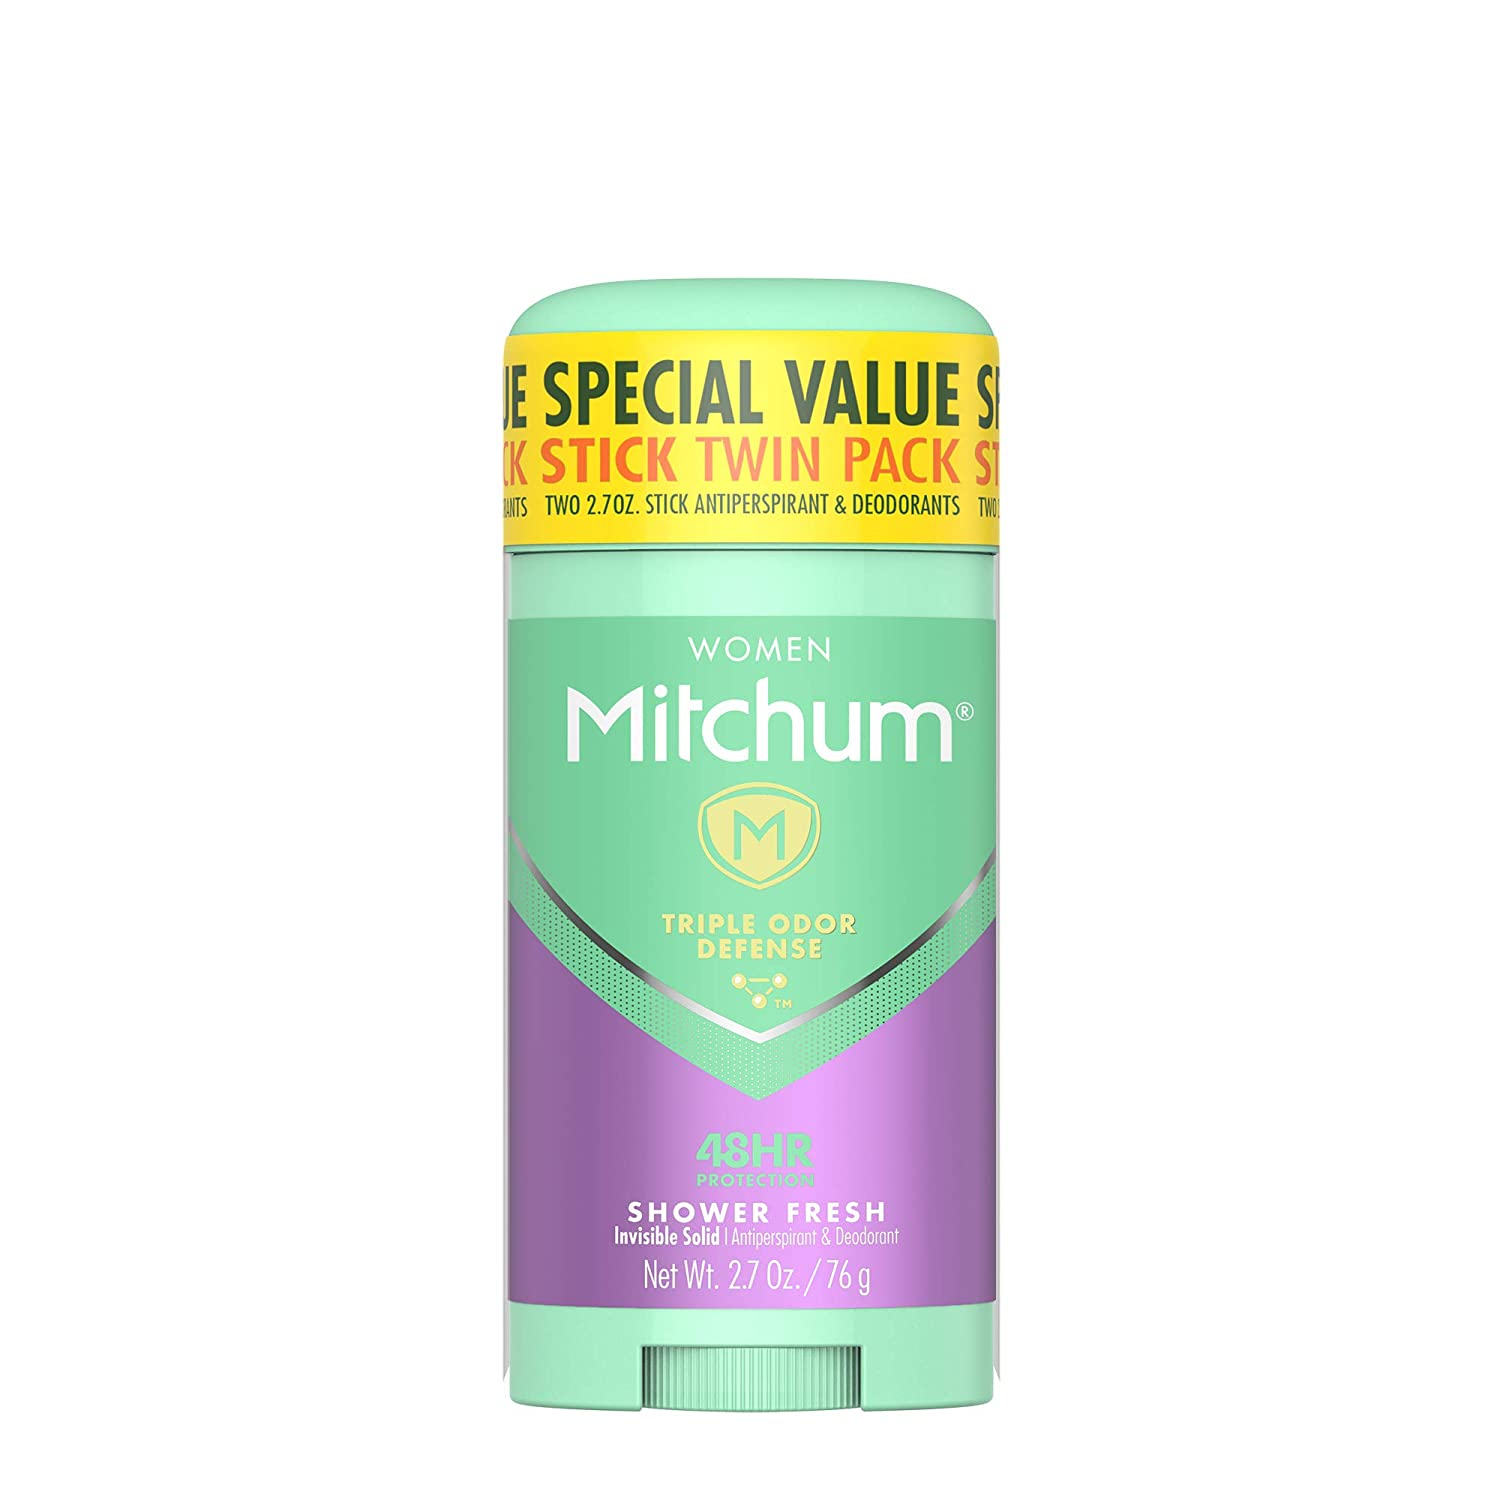 Mitchum Women Invisible Solid Antiperspirant Deodorant, Shower Fresh, 2.7 Ounce (Pack of 2)